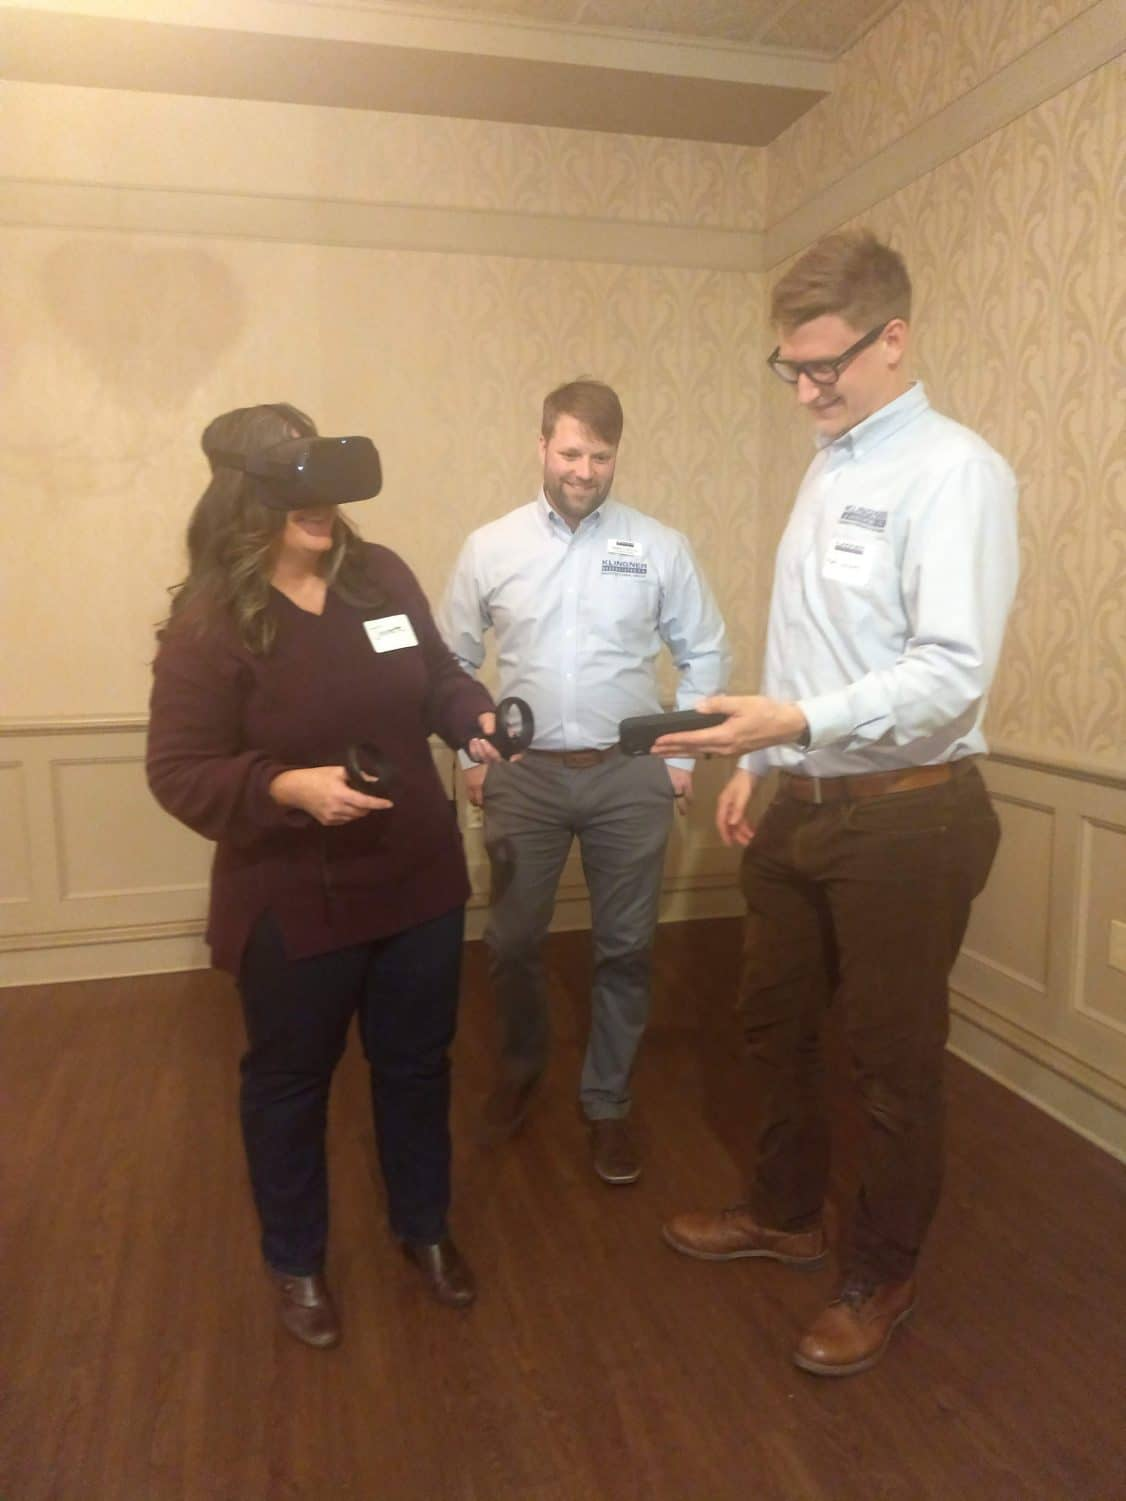 Derek Mulch, AIA, and Matt Sudaholc, PE, with an attendee wearing the VR headset.